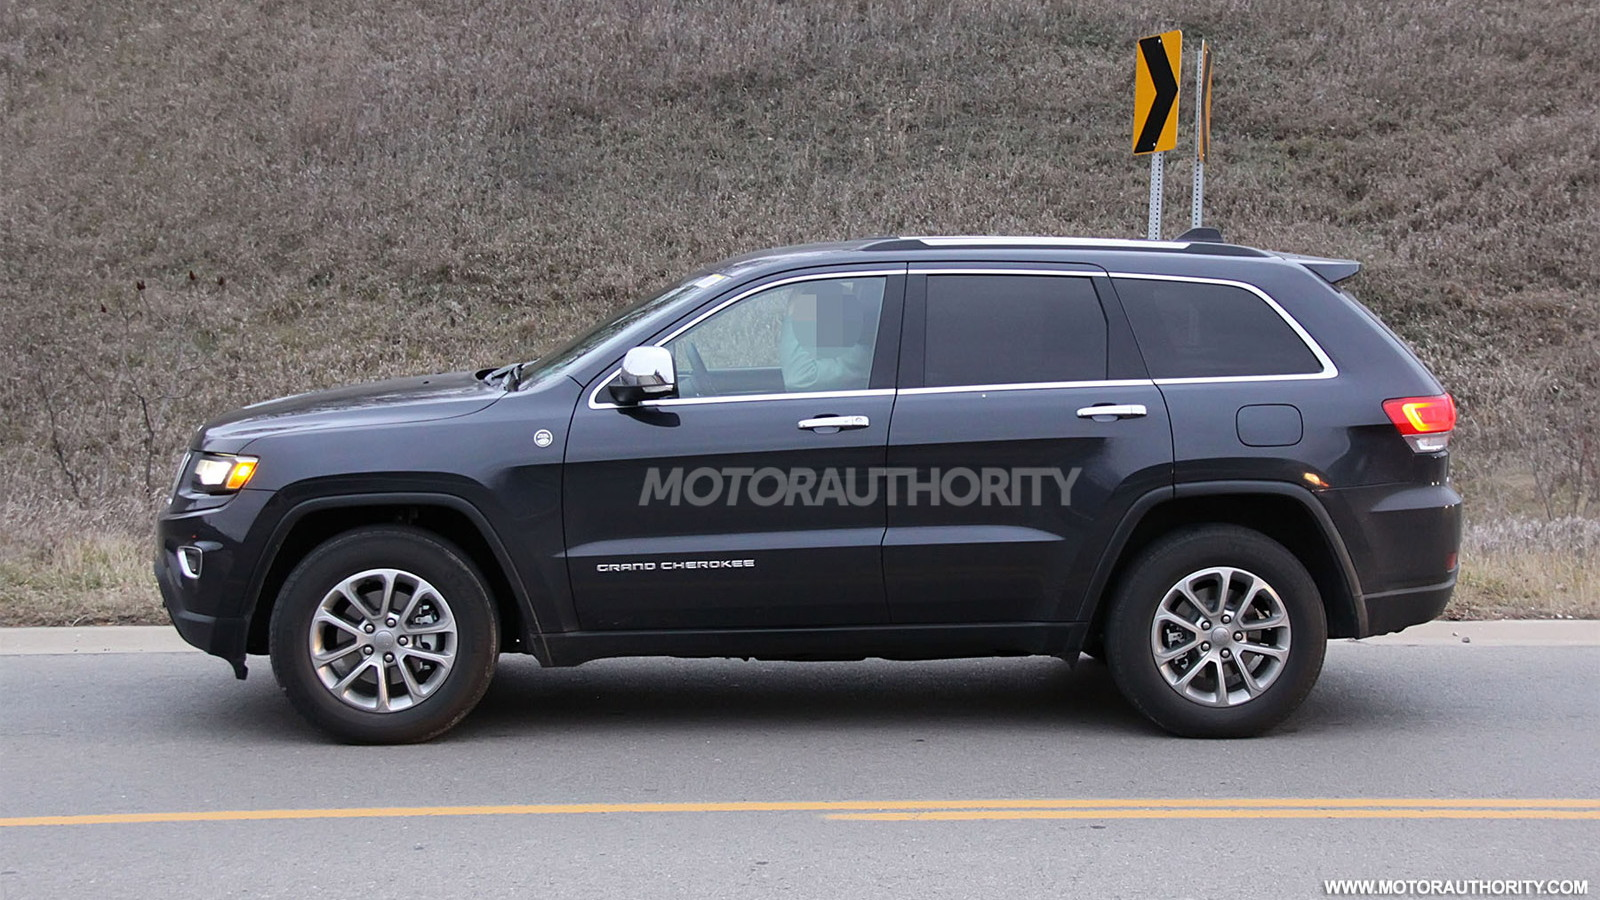 2014 Jeep Grand Cherokee facelift spy shots